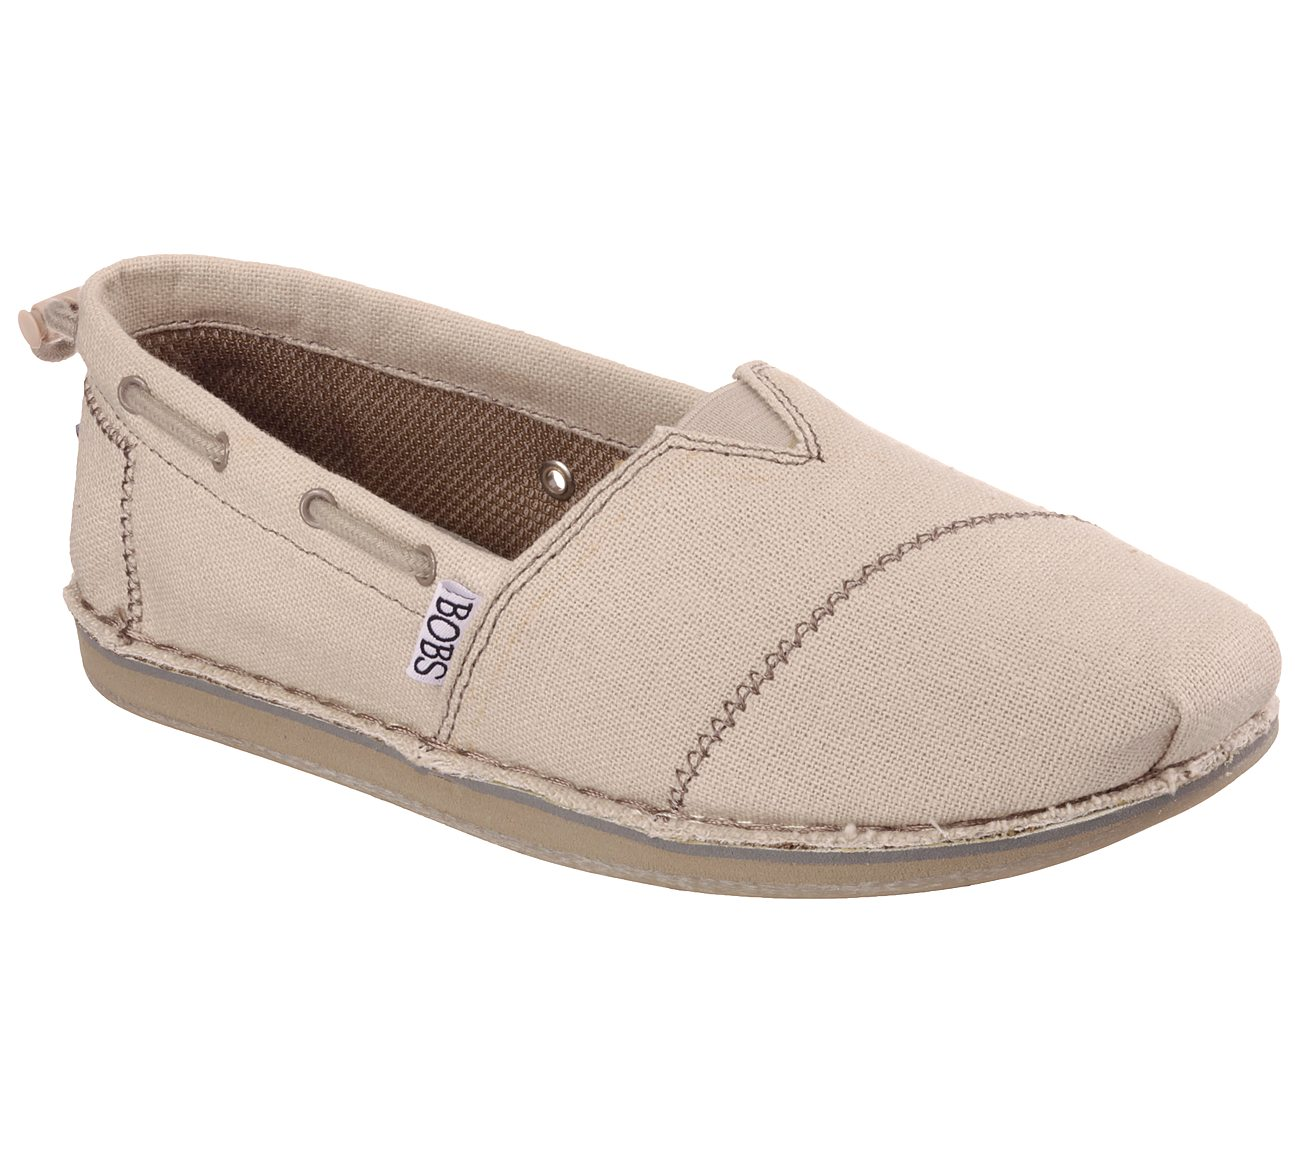 Bobs By Skechers Khaki Drakes | Bobs | Mens clothing styles